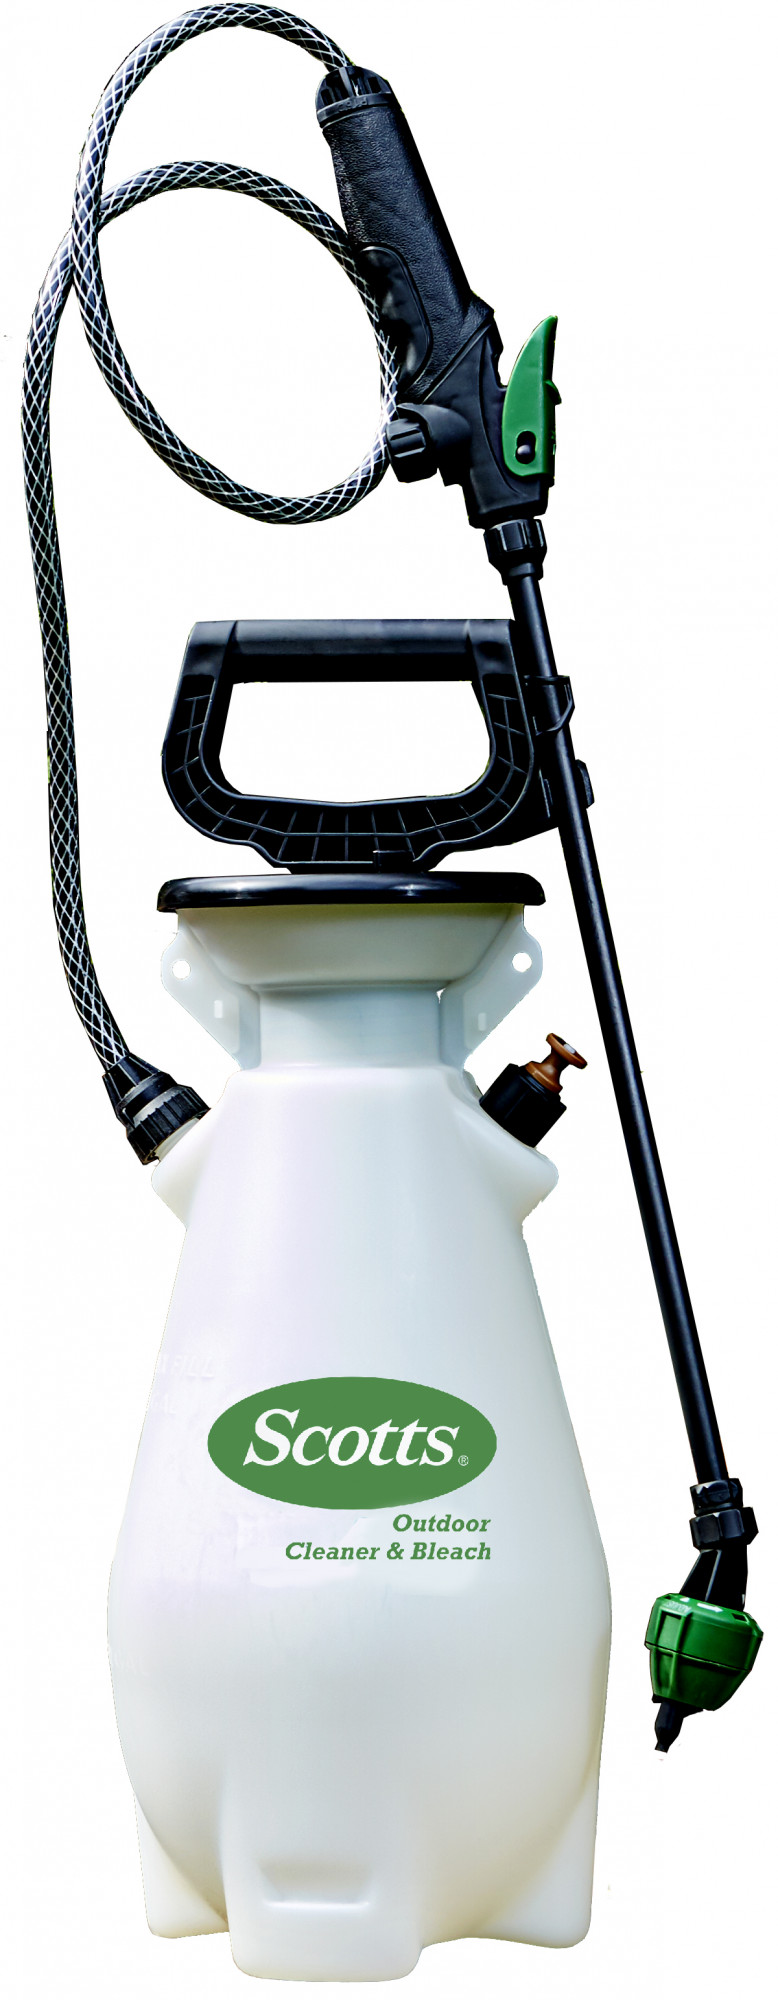 Scotts® 1 Gal, Outdoor Cleaner & Bleach Sprayer, Model 190531